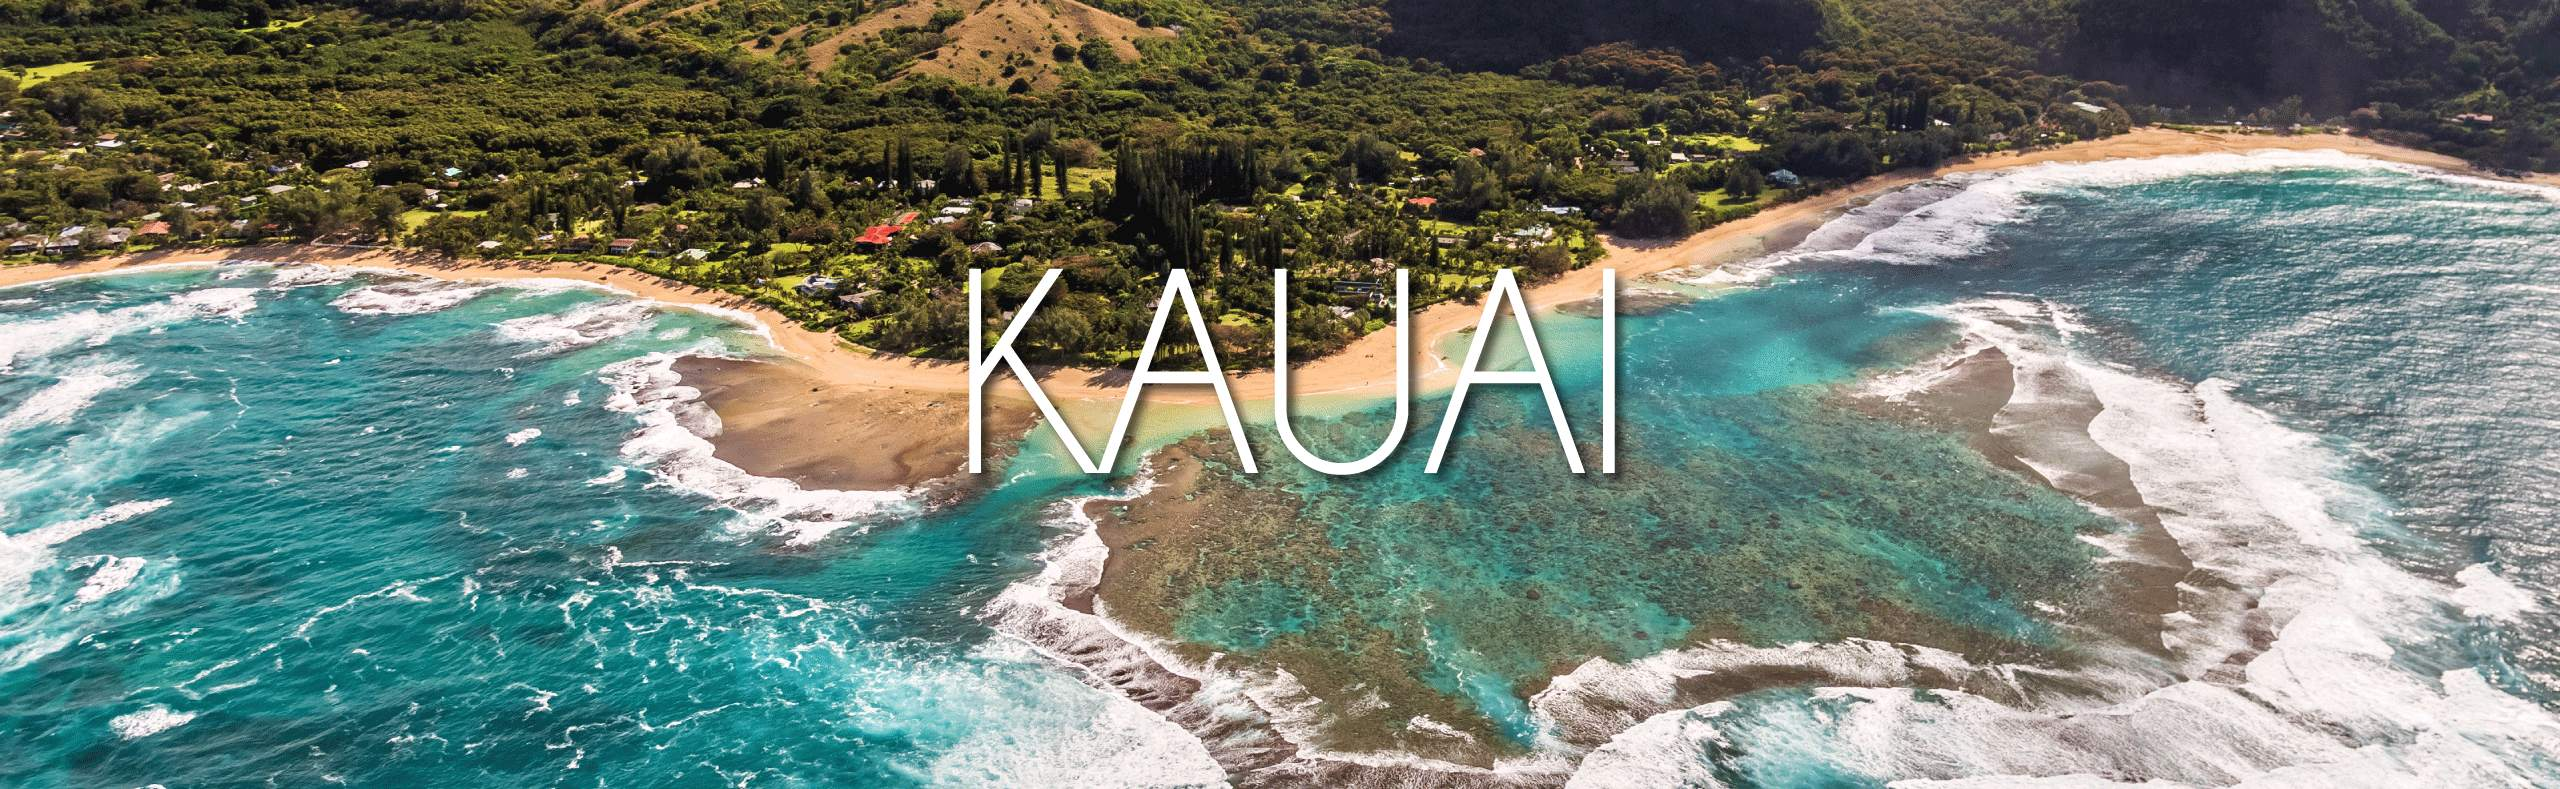 Tom Barefoot's Tours offers hundreds of Kauai Activities and Kauai Tours.